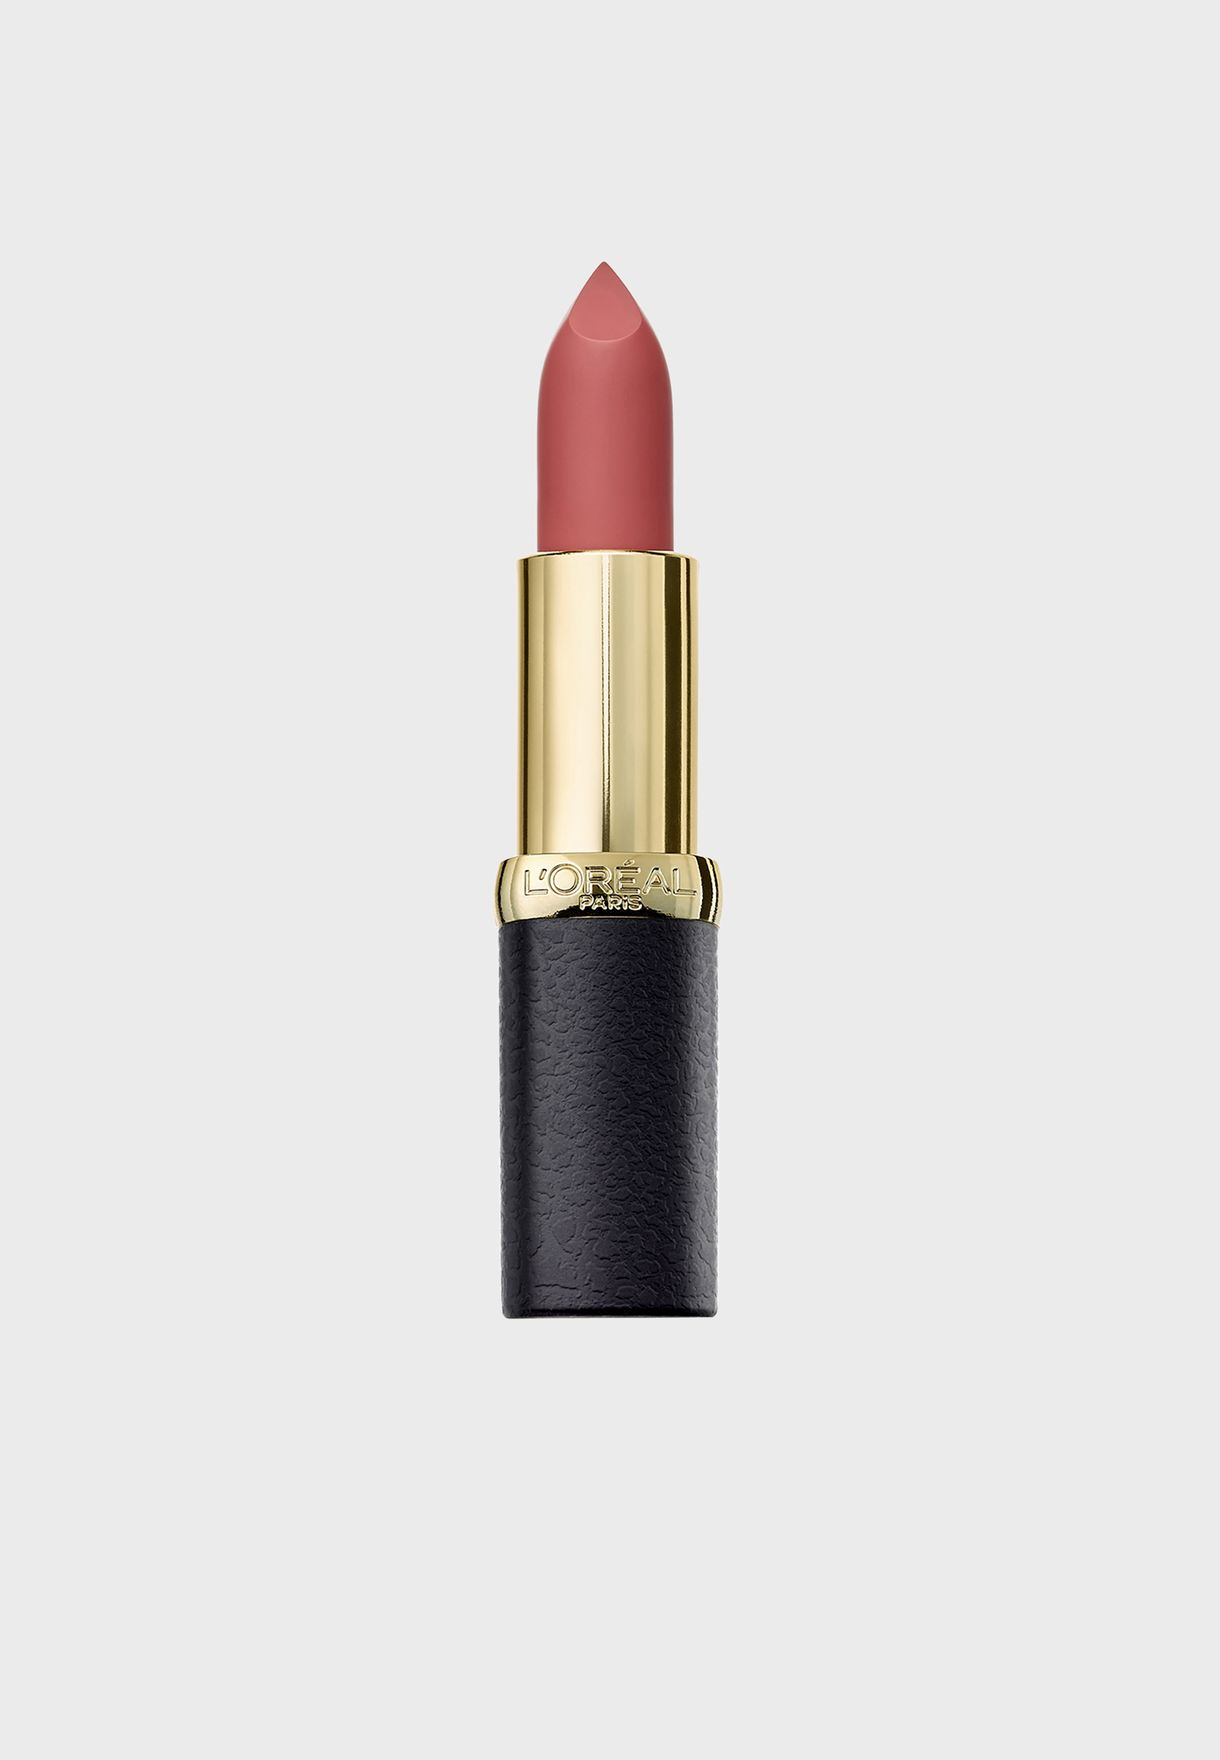 Color Riche Matte Obsession Lipstick 640 Erotique